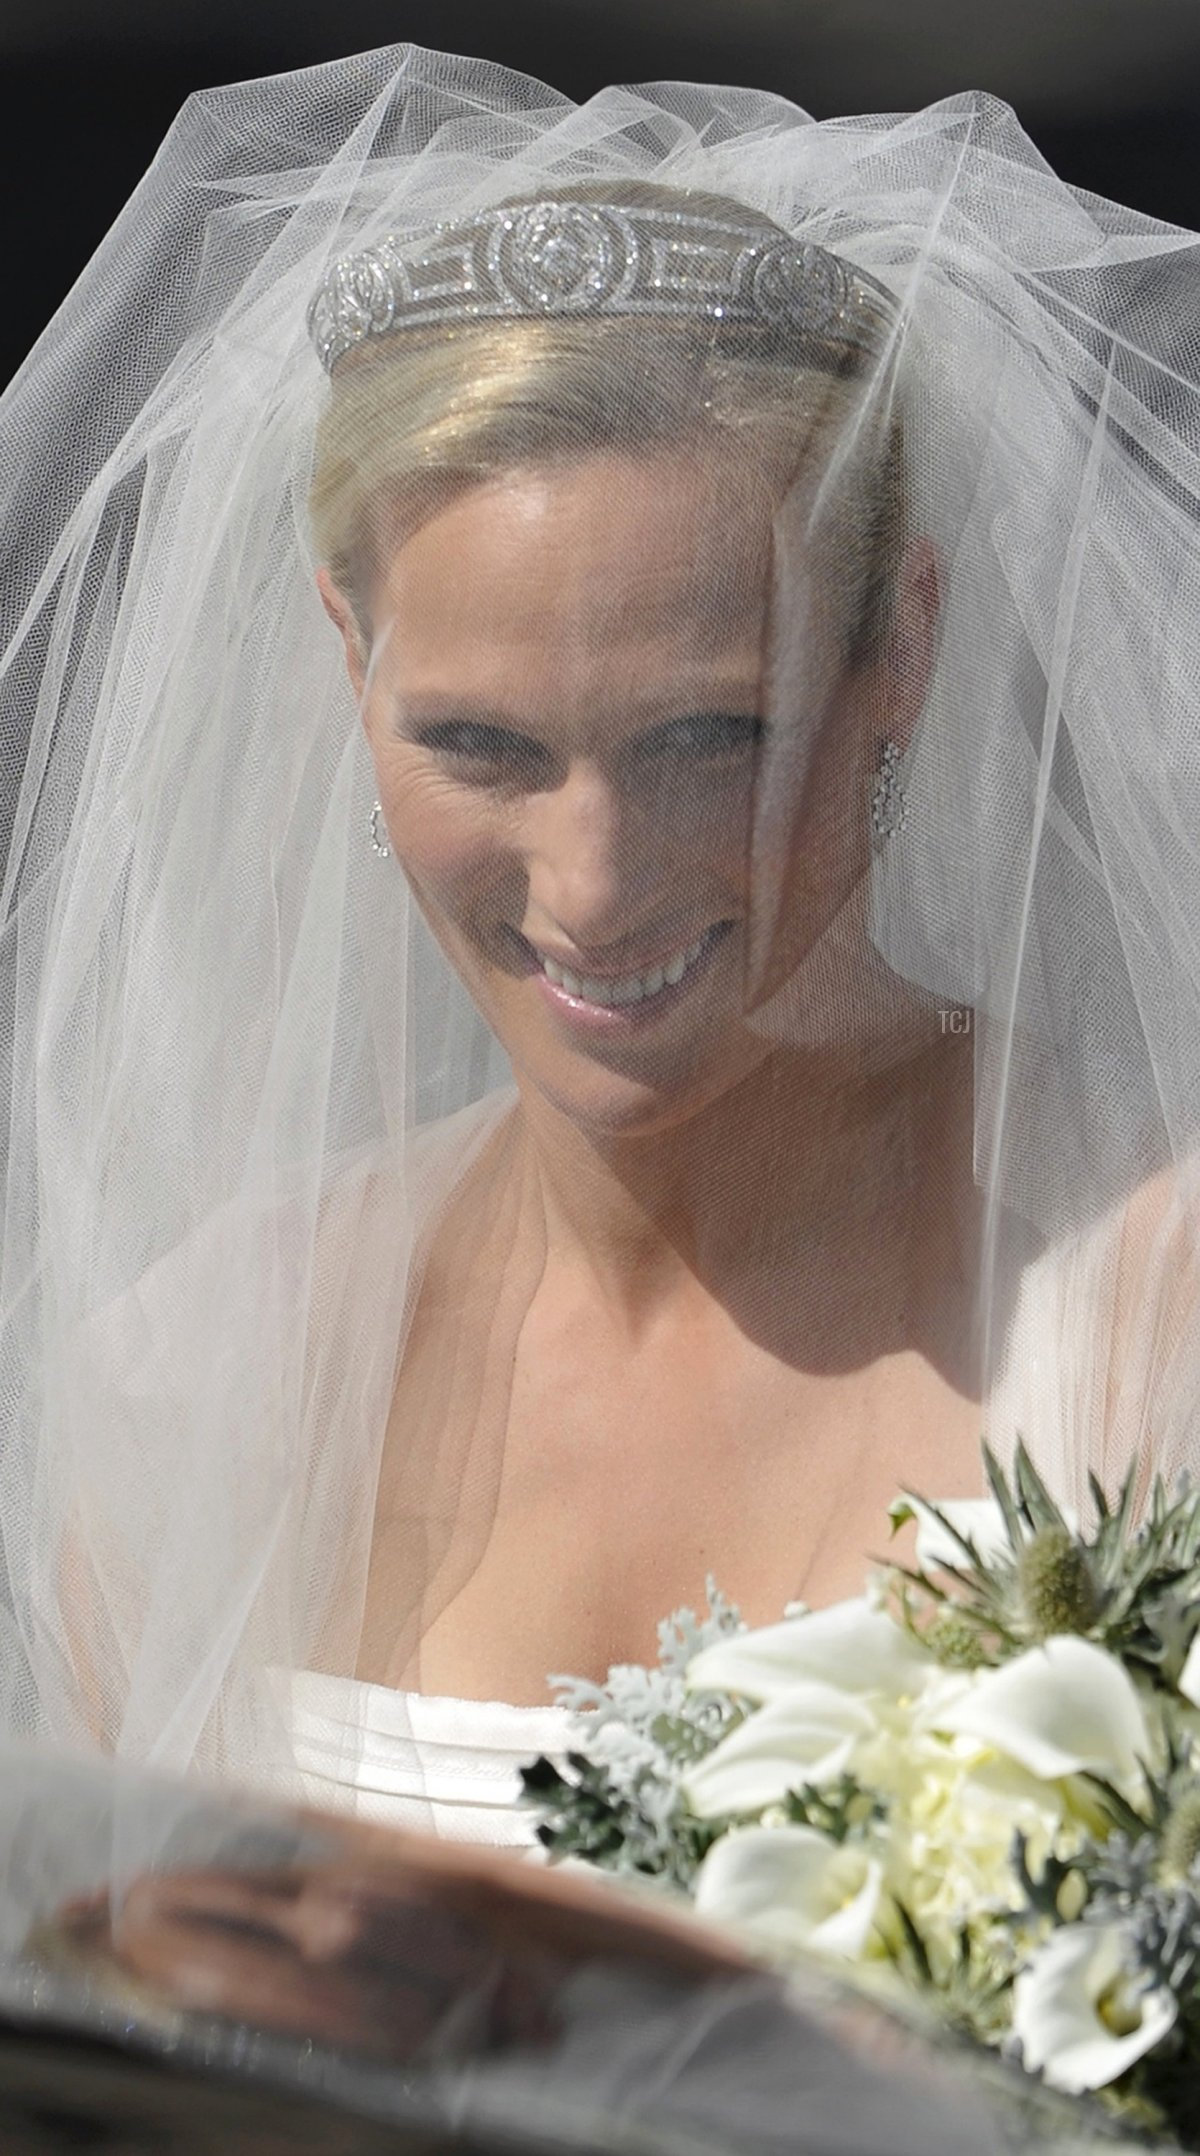 Britain's Zara Phillips, the eldest granddaughter of Queen Elizabeth II, arrives for her wedding to England rugby player Mike Tindall at Canongate Kirk in Edinburgh, Scotland, on July 30, 2011